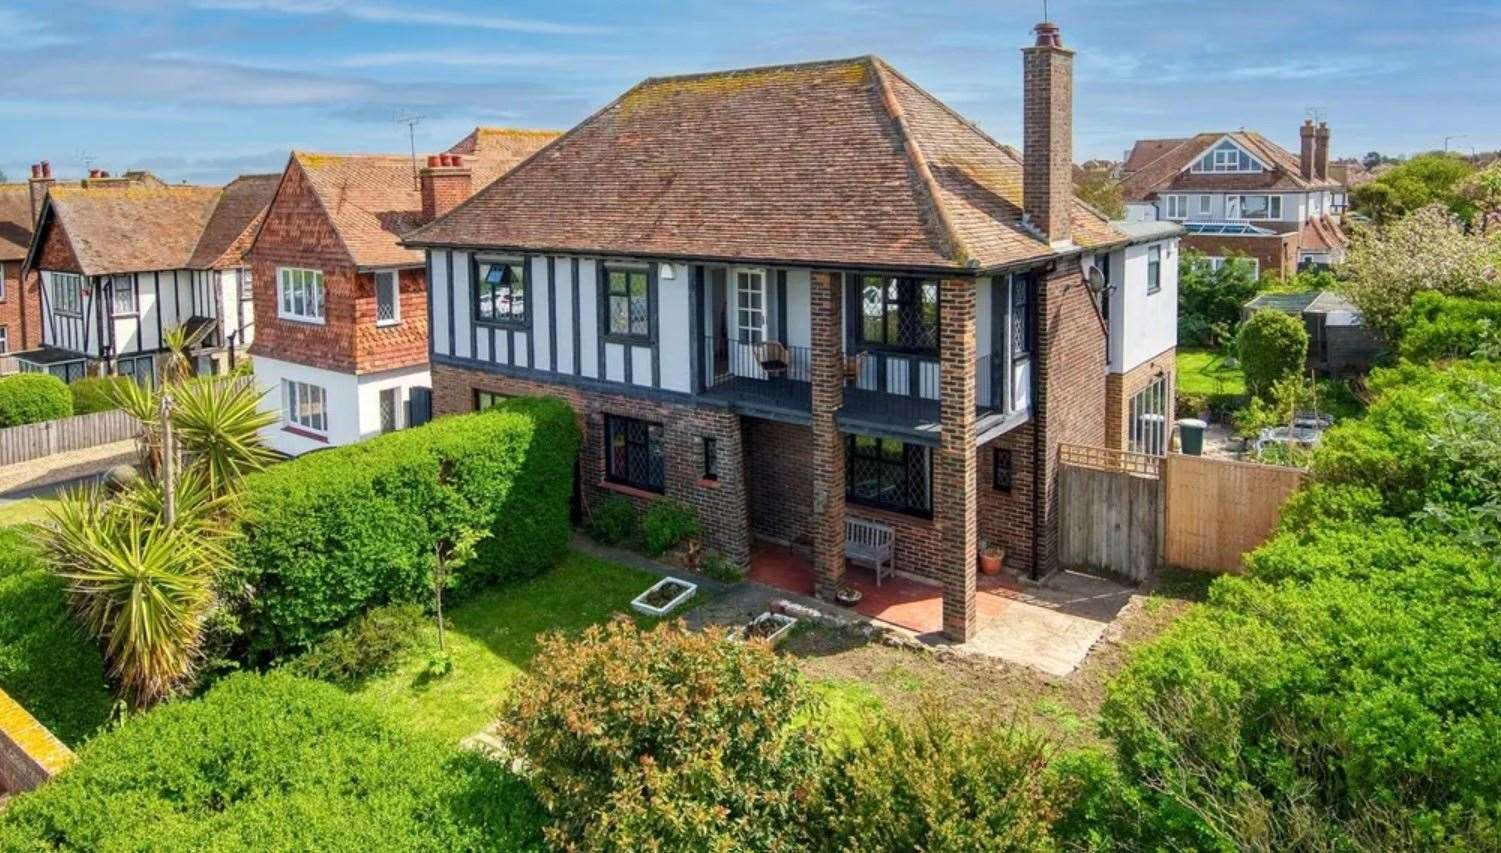 The four-bed detached house in Royal Esplanade. Picture: Zoopla / Miles & Barr